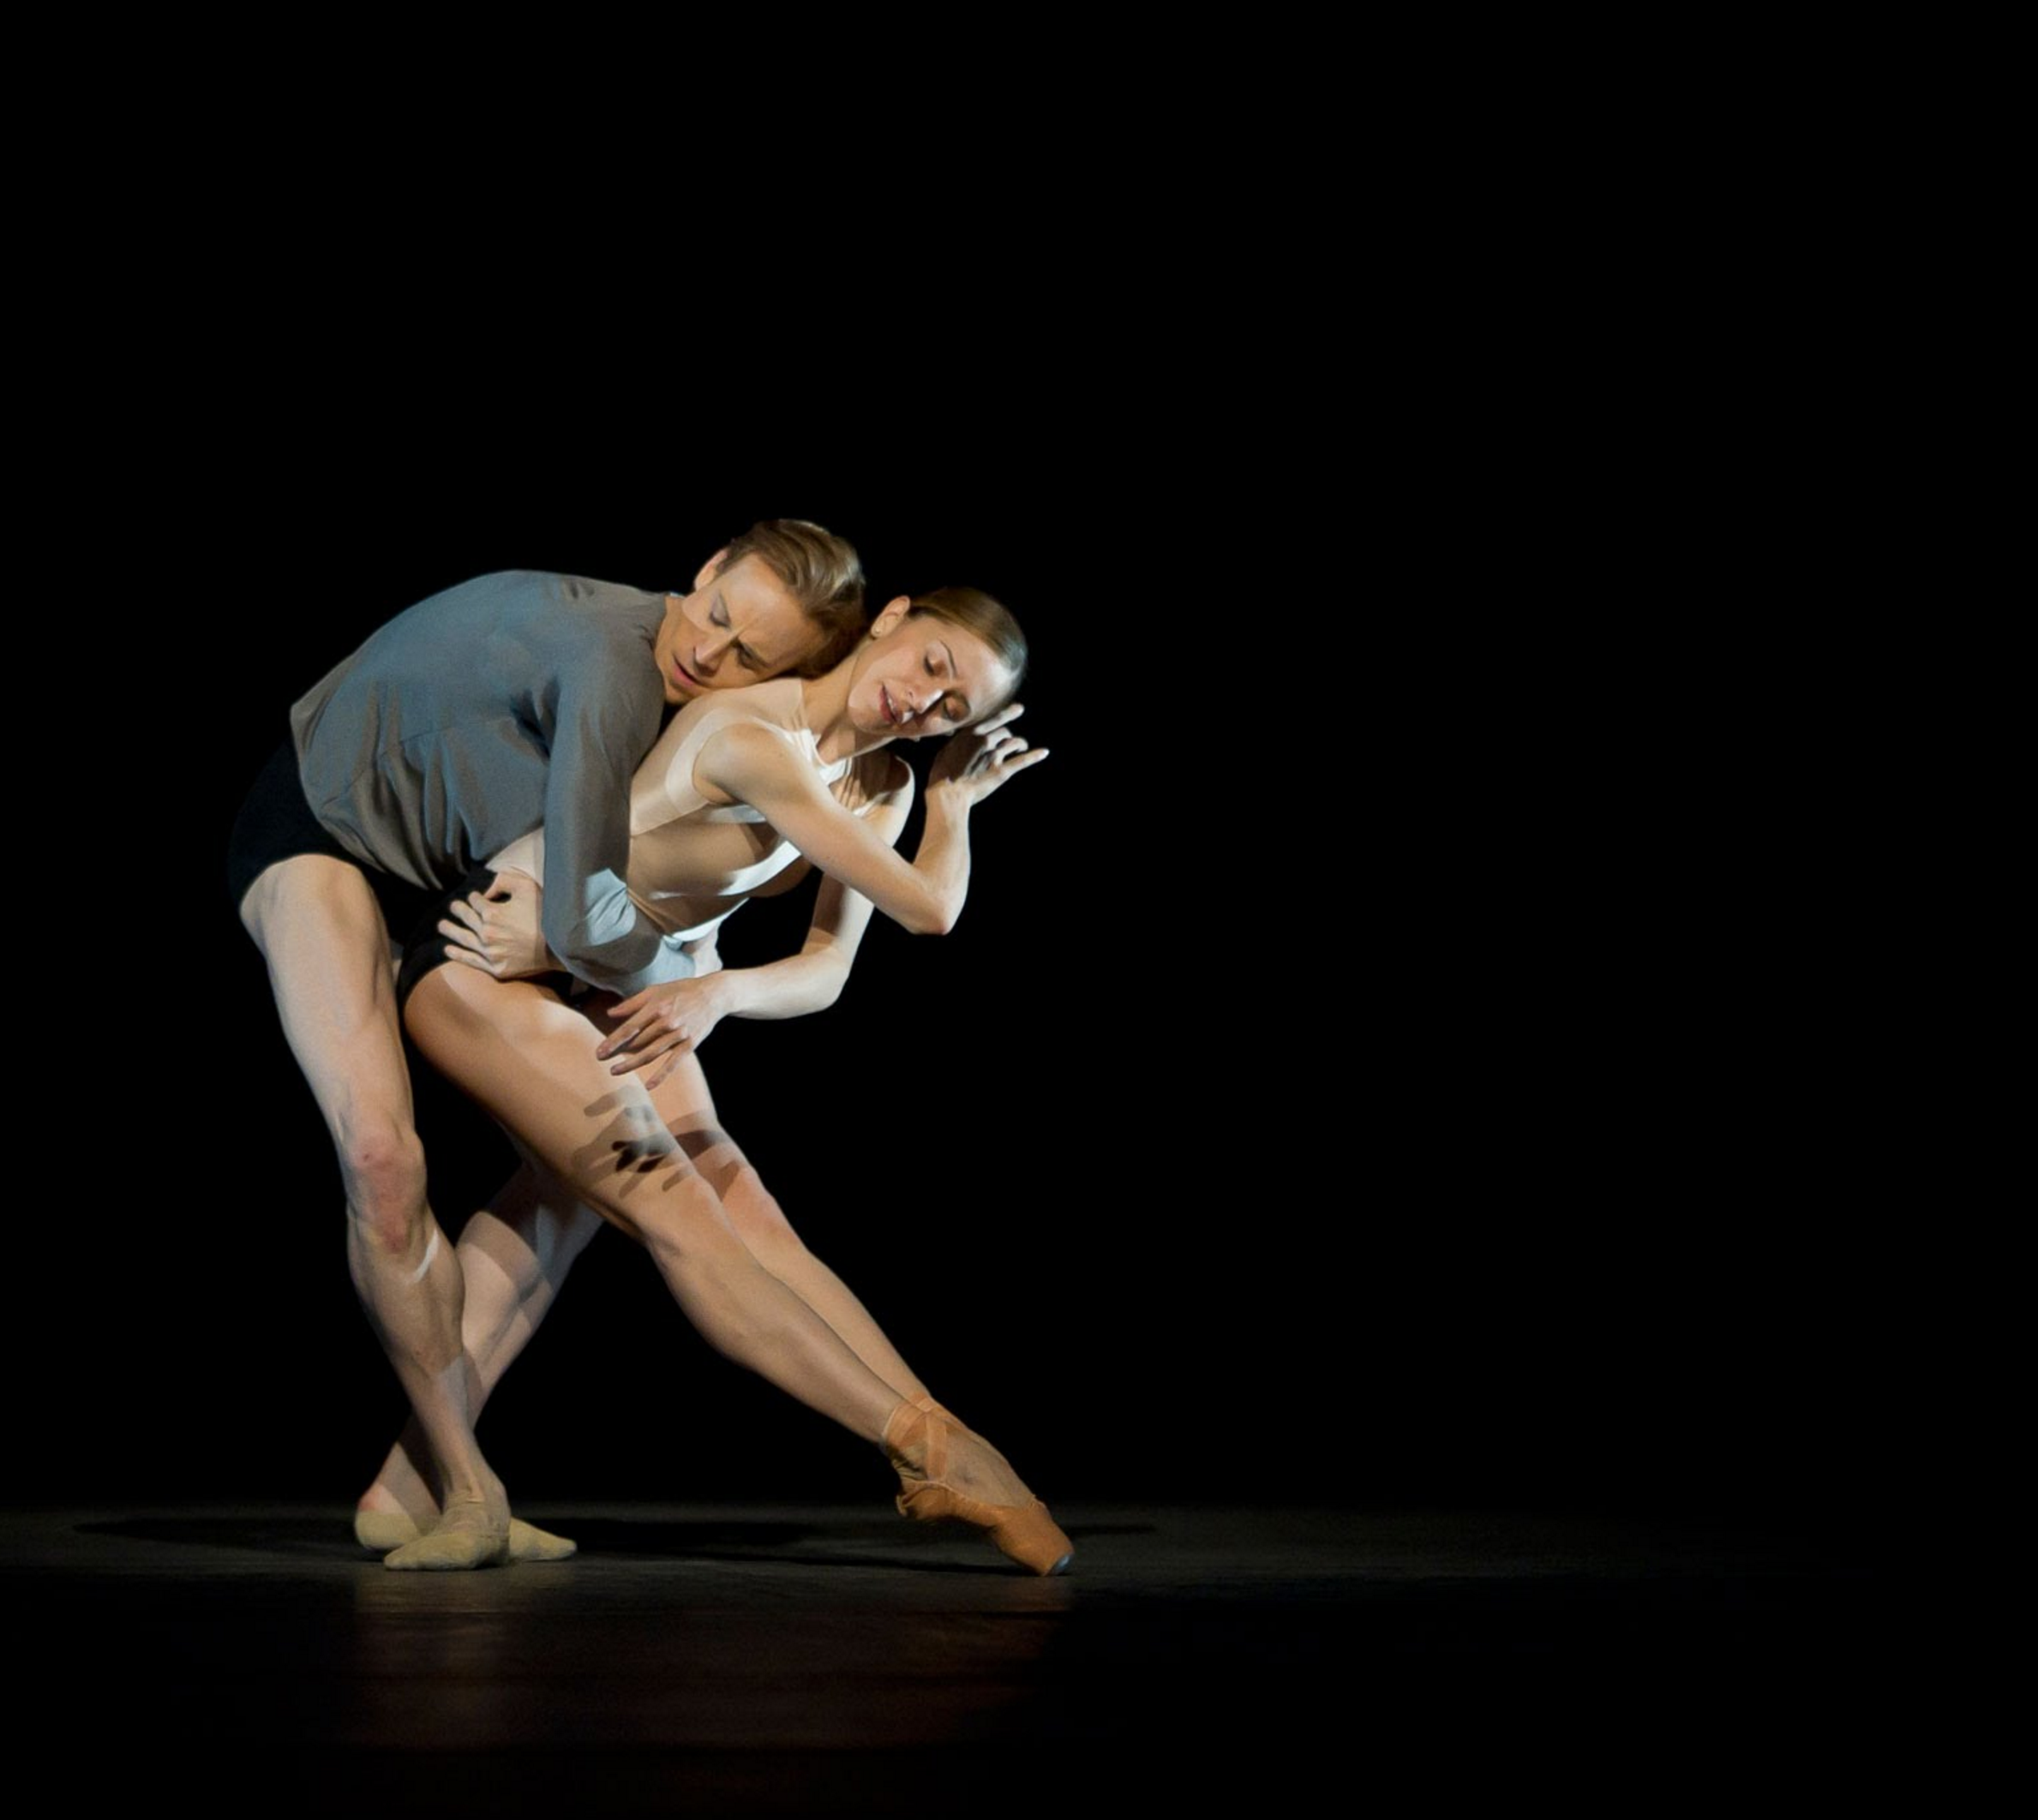 Edward Watson and Mariela Nunez in Infra by Wayne McGregor